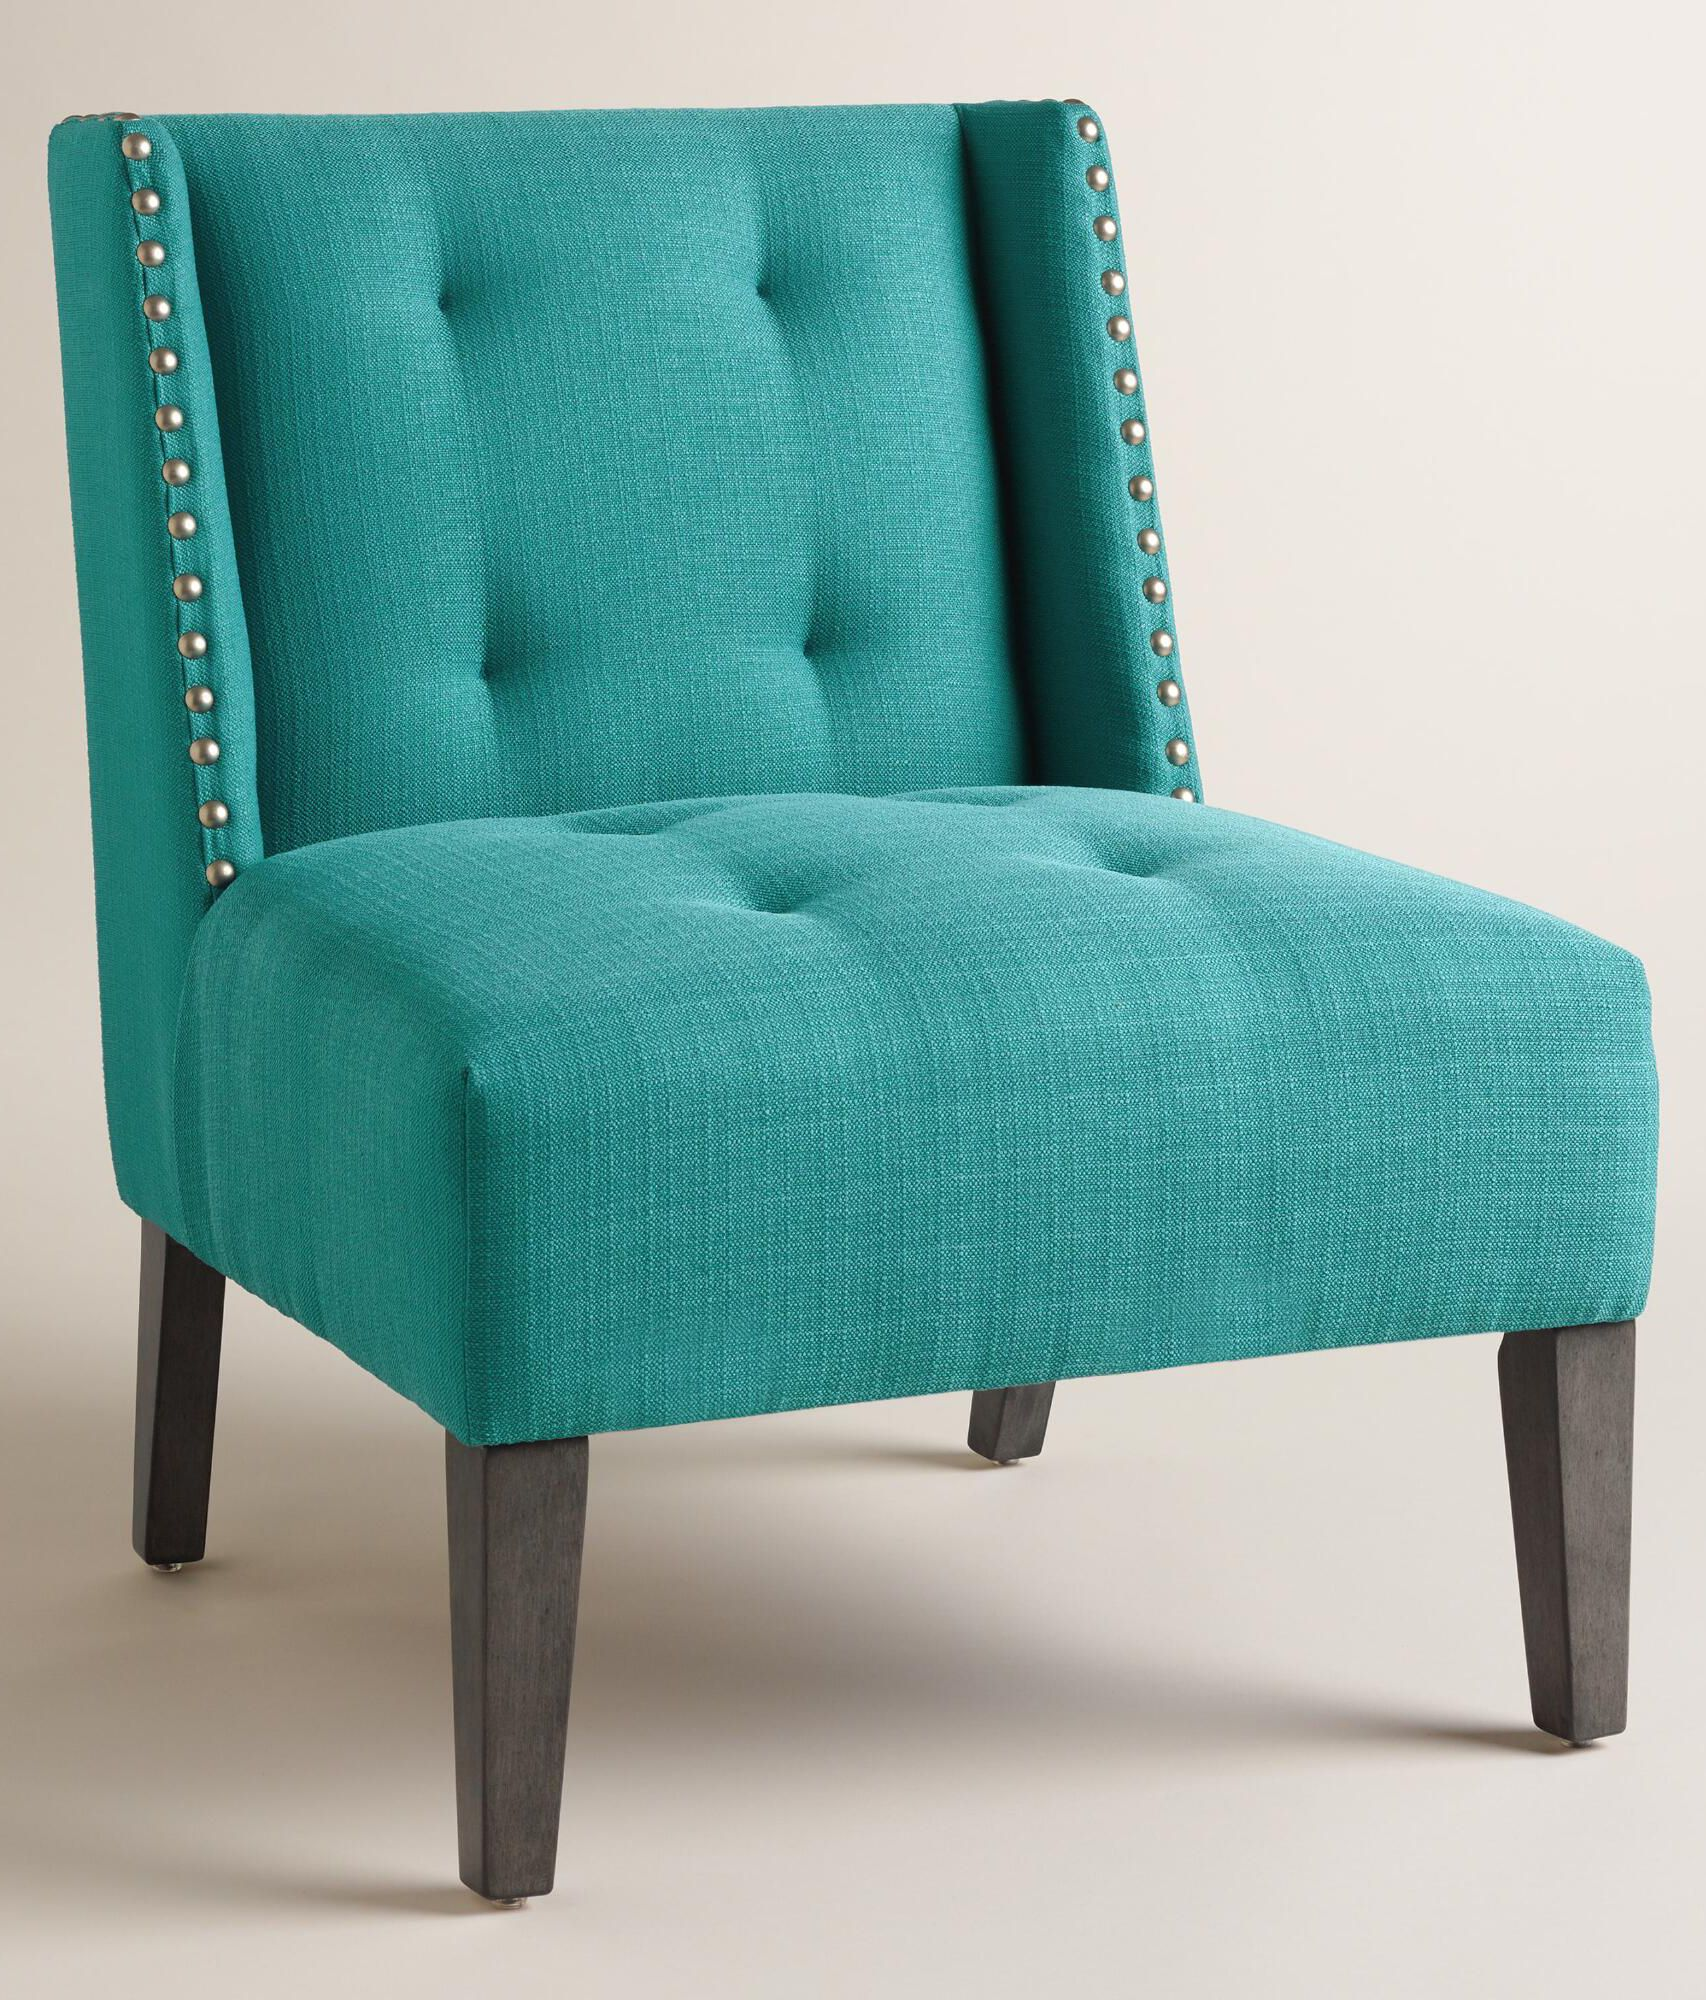 Peacock Blue Carlin Wingback Chair House Of Turquoise Blue